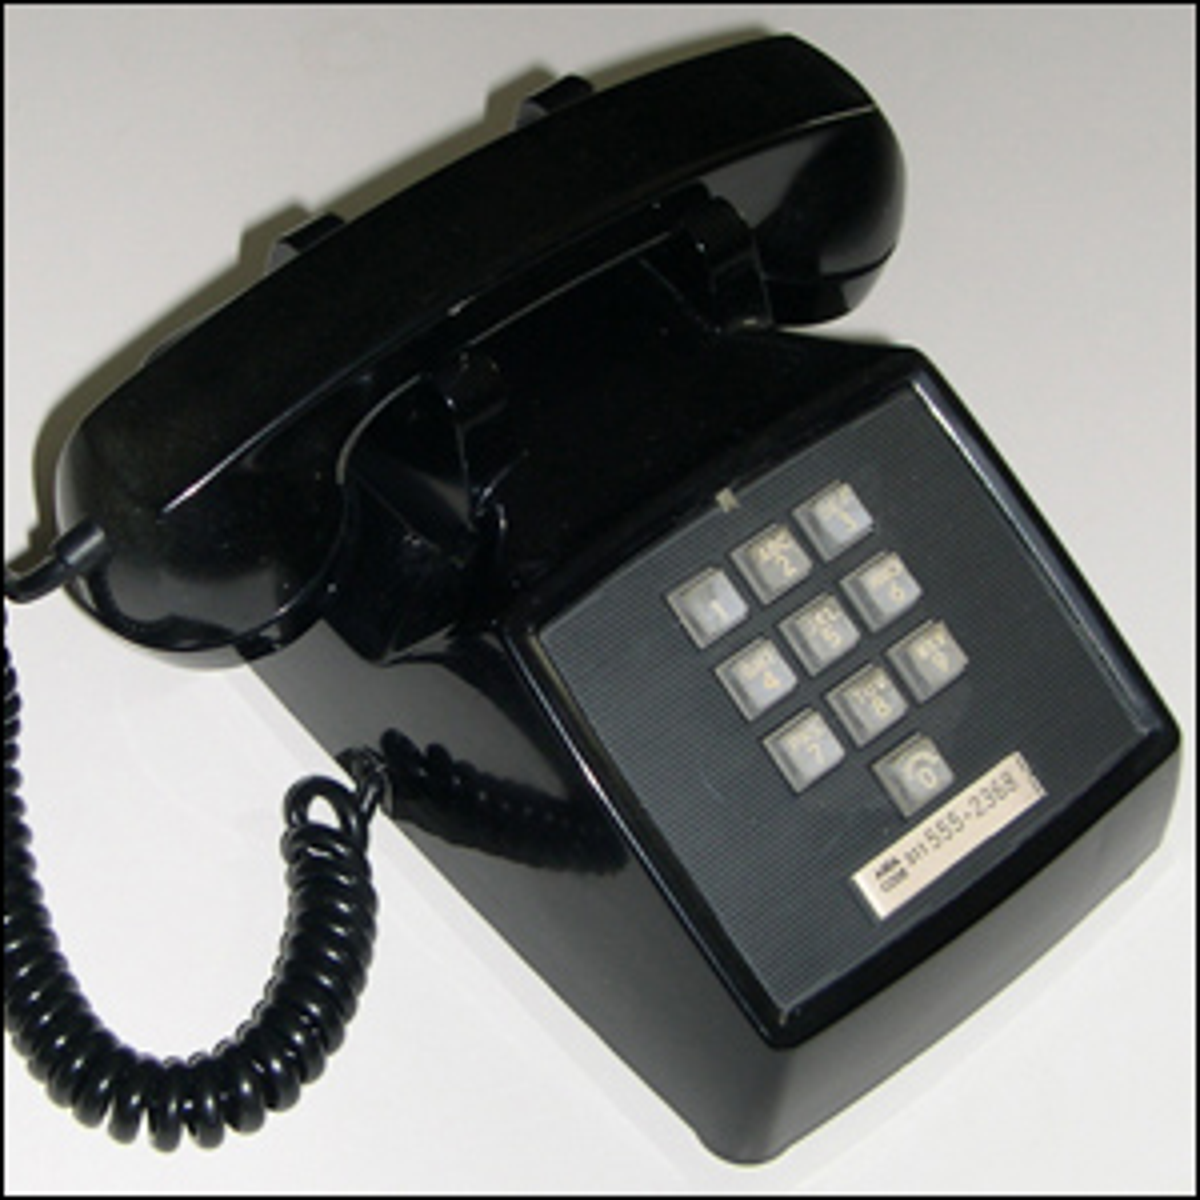 Photo of an old Western Electric WE 1500 desk phone.